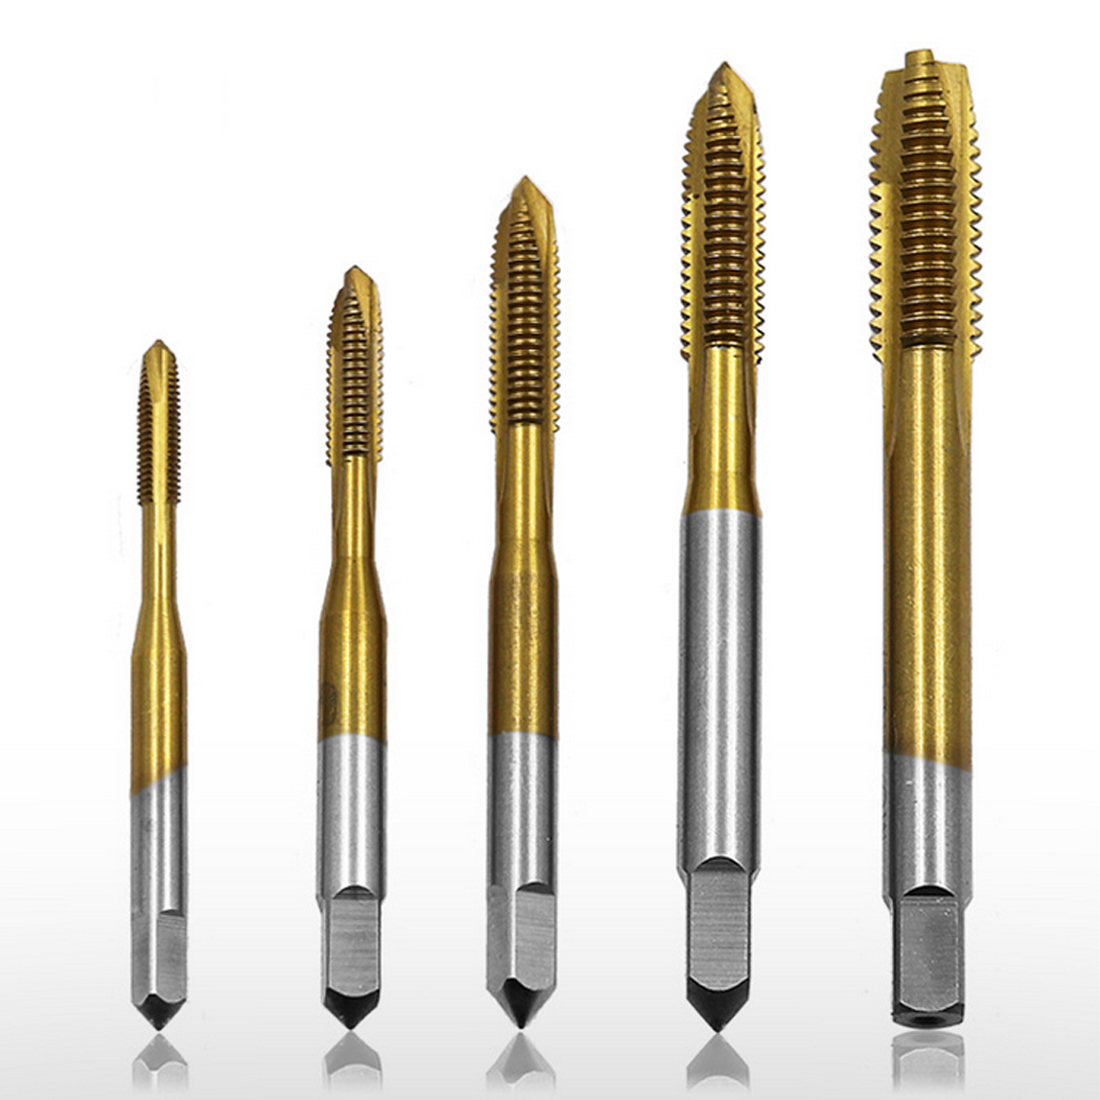 1pcs/5pcs Titanium Coated Thread Tap Drill Metric Hss Spiral Fluted Machine Screw Tap Spiral Pointed Taps M3 M4 M5 M6 M8